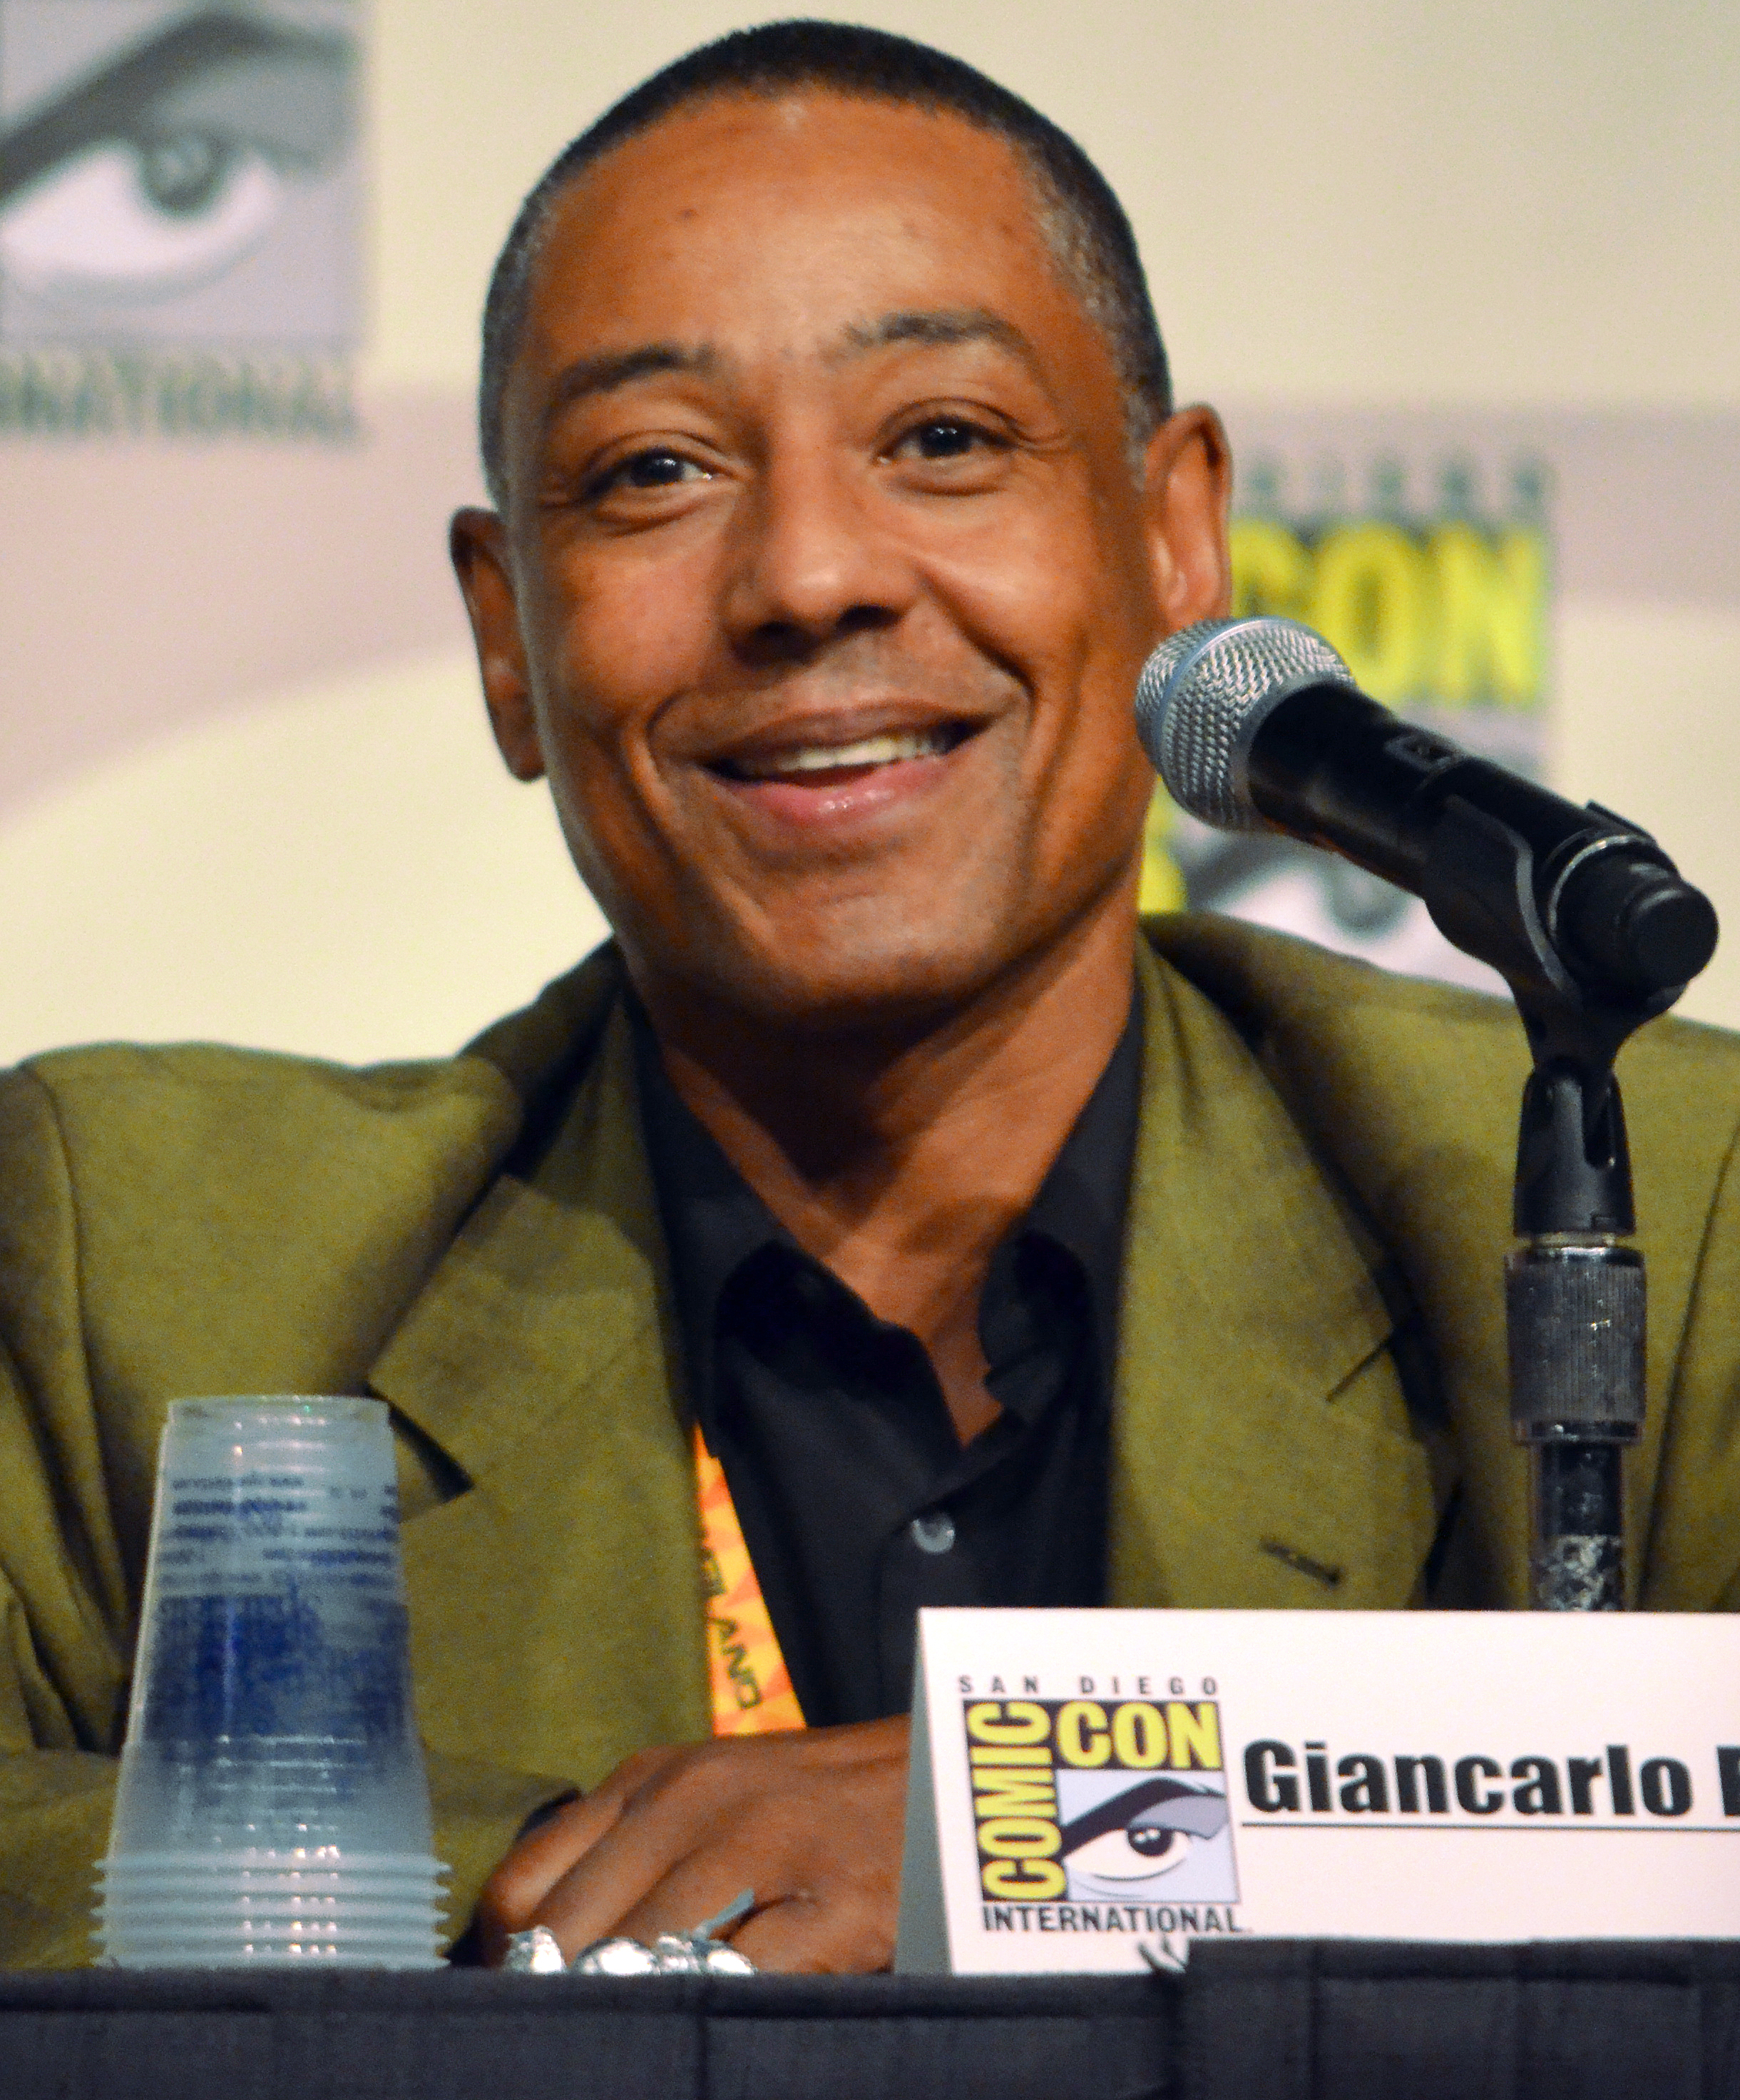 The 60-year old son of father Giovanni Esposito and mother Elizabeth Foster Esposito  Giancarlo Esposito in 2018 photo. Giancarlo Esposito earned a  million dollar salary - leaving the net worth at 2 million in 2018